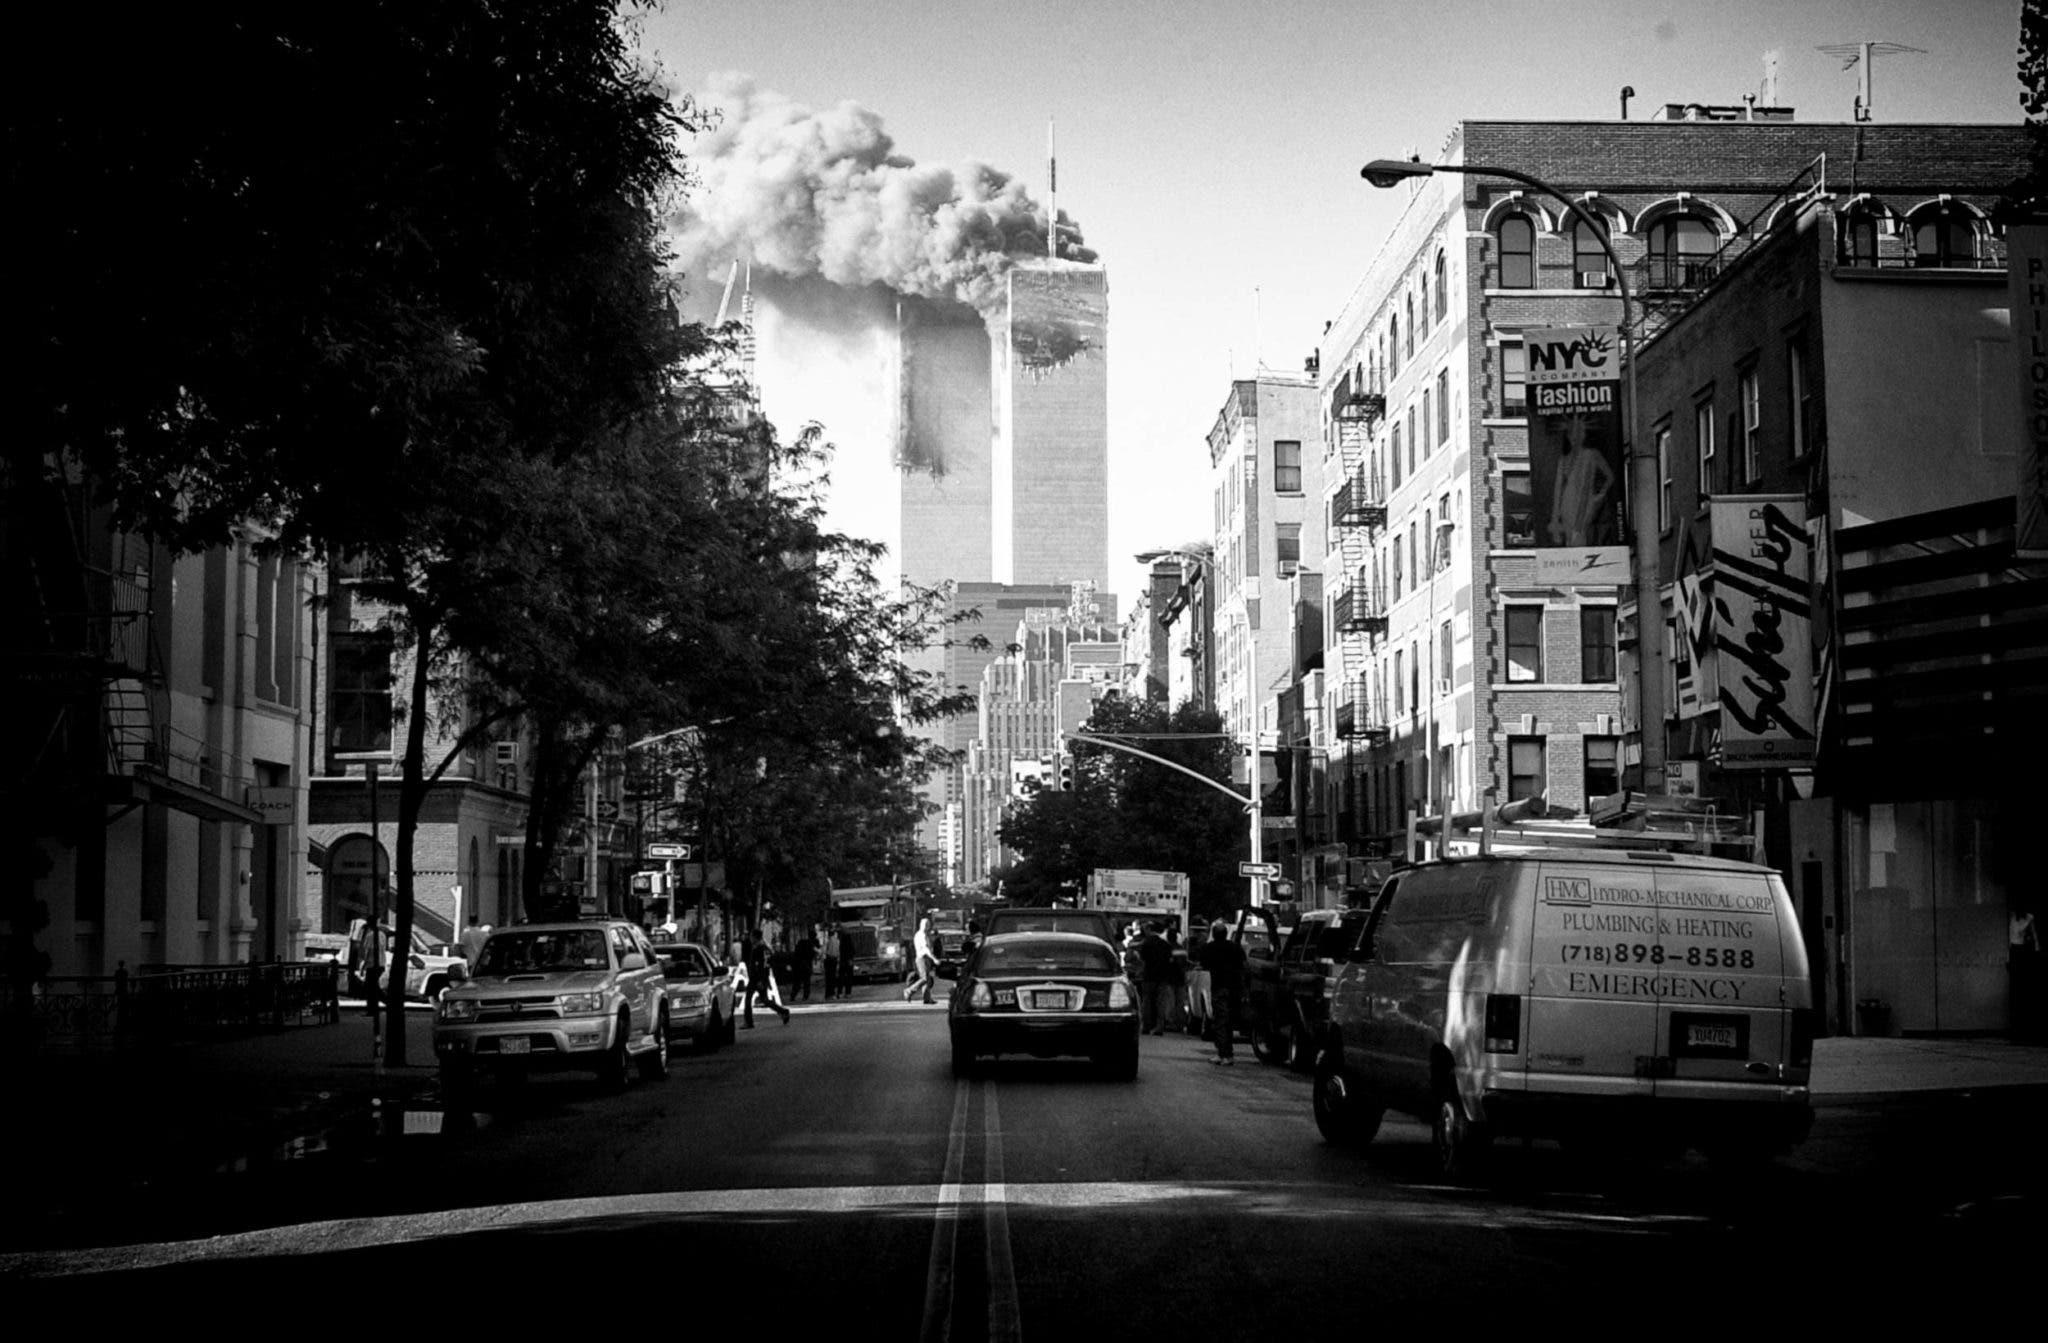 Two hours on 9/11: An interview with Phil Penman